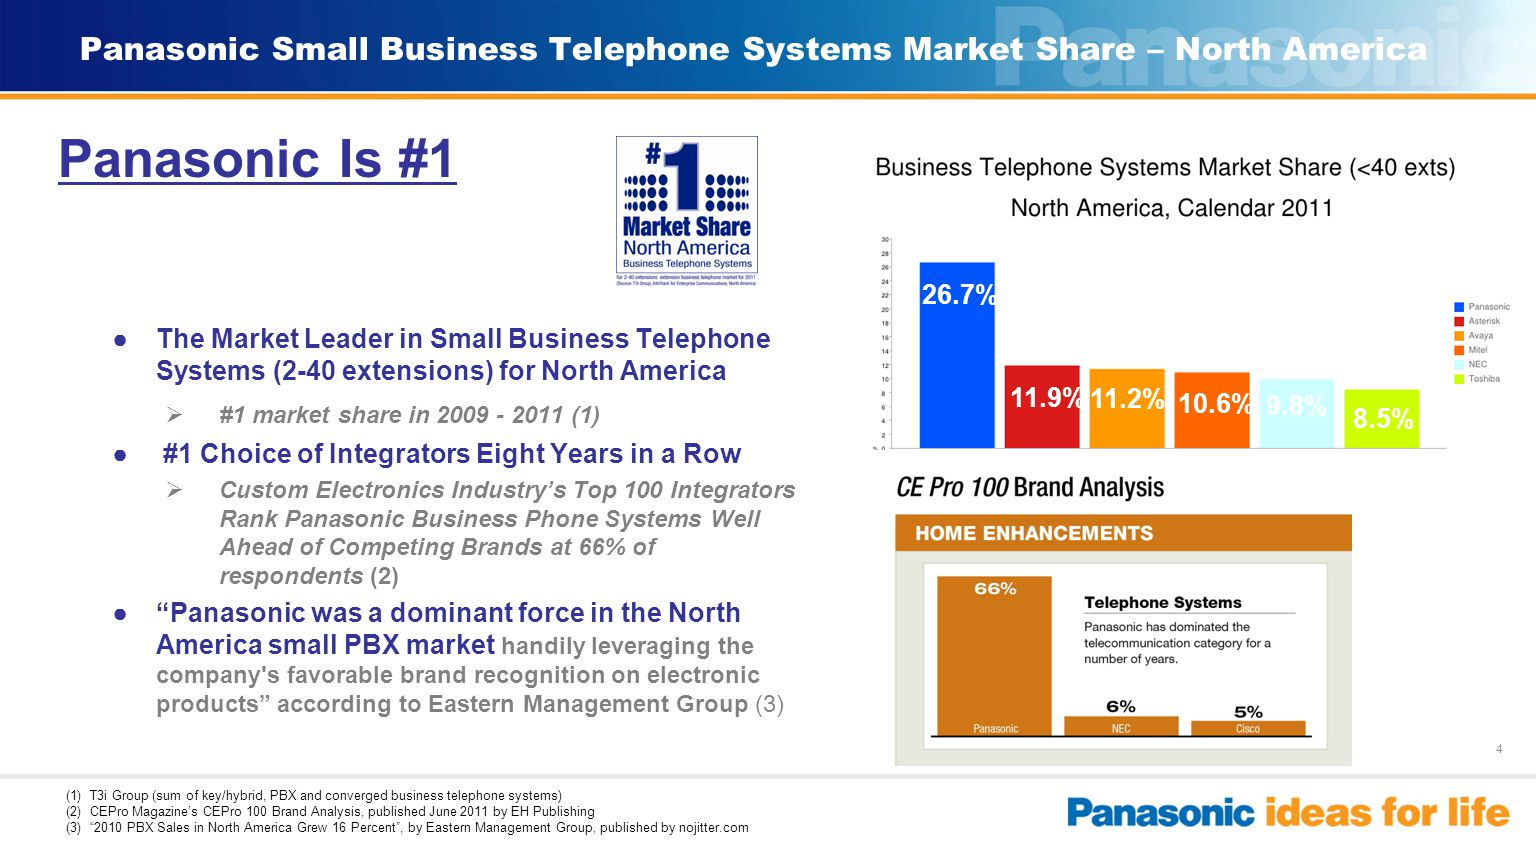 5 WORLD CORDED PBX/IP PBX MARKET Manufacturer Market Shares, by Volume, Extensions Sold, Below 100 (excl Micro PBX) Panasonic Is #1 According to MZA Ltd., The World PBX/IP-PBX Market Competitive Environment 2011, published July 2011 Panasonic Small Business Telephone Systems Market Share – Global